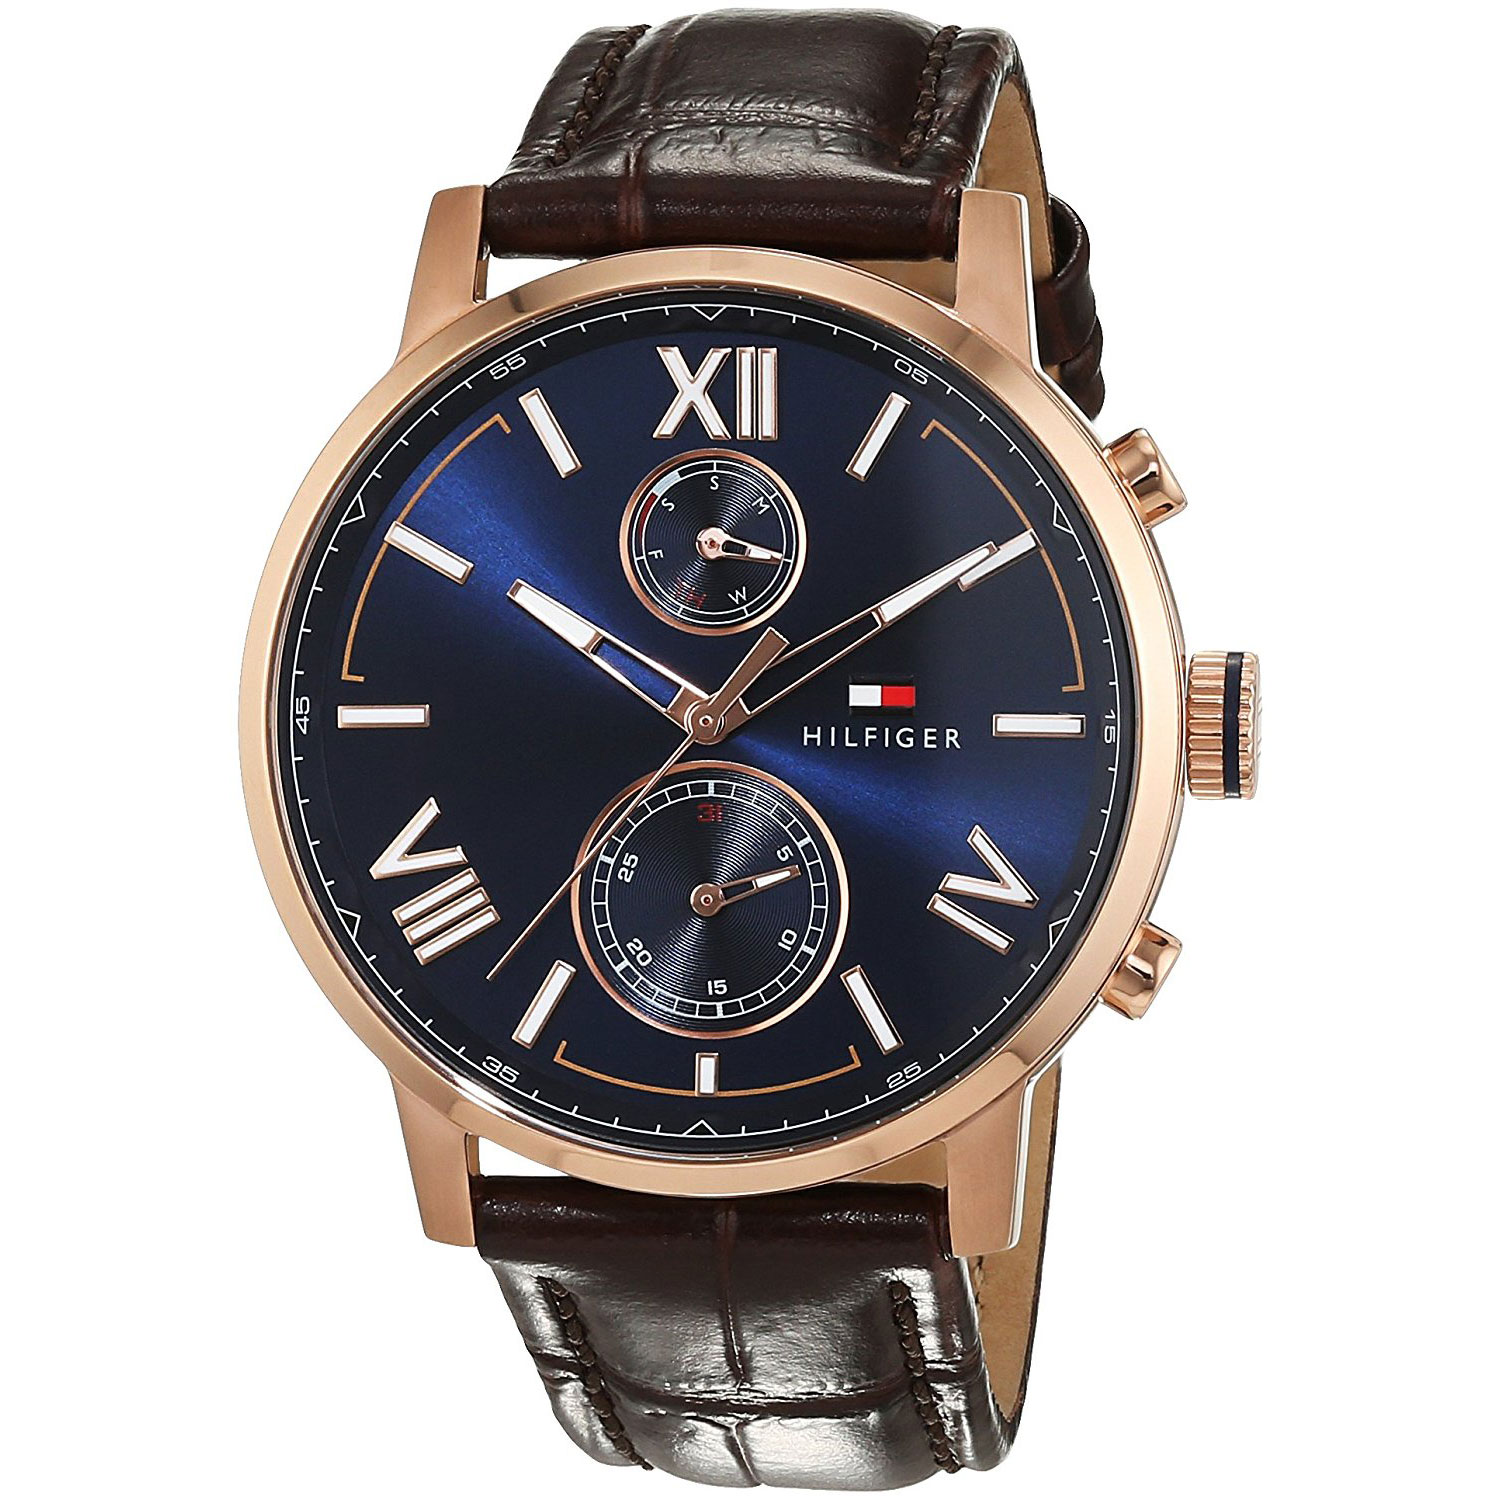 Good Watch Brands For Men >> Tommy Hilfiger watch with rose gold stainless steel and ...